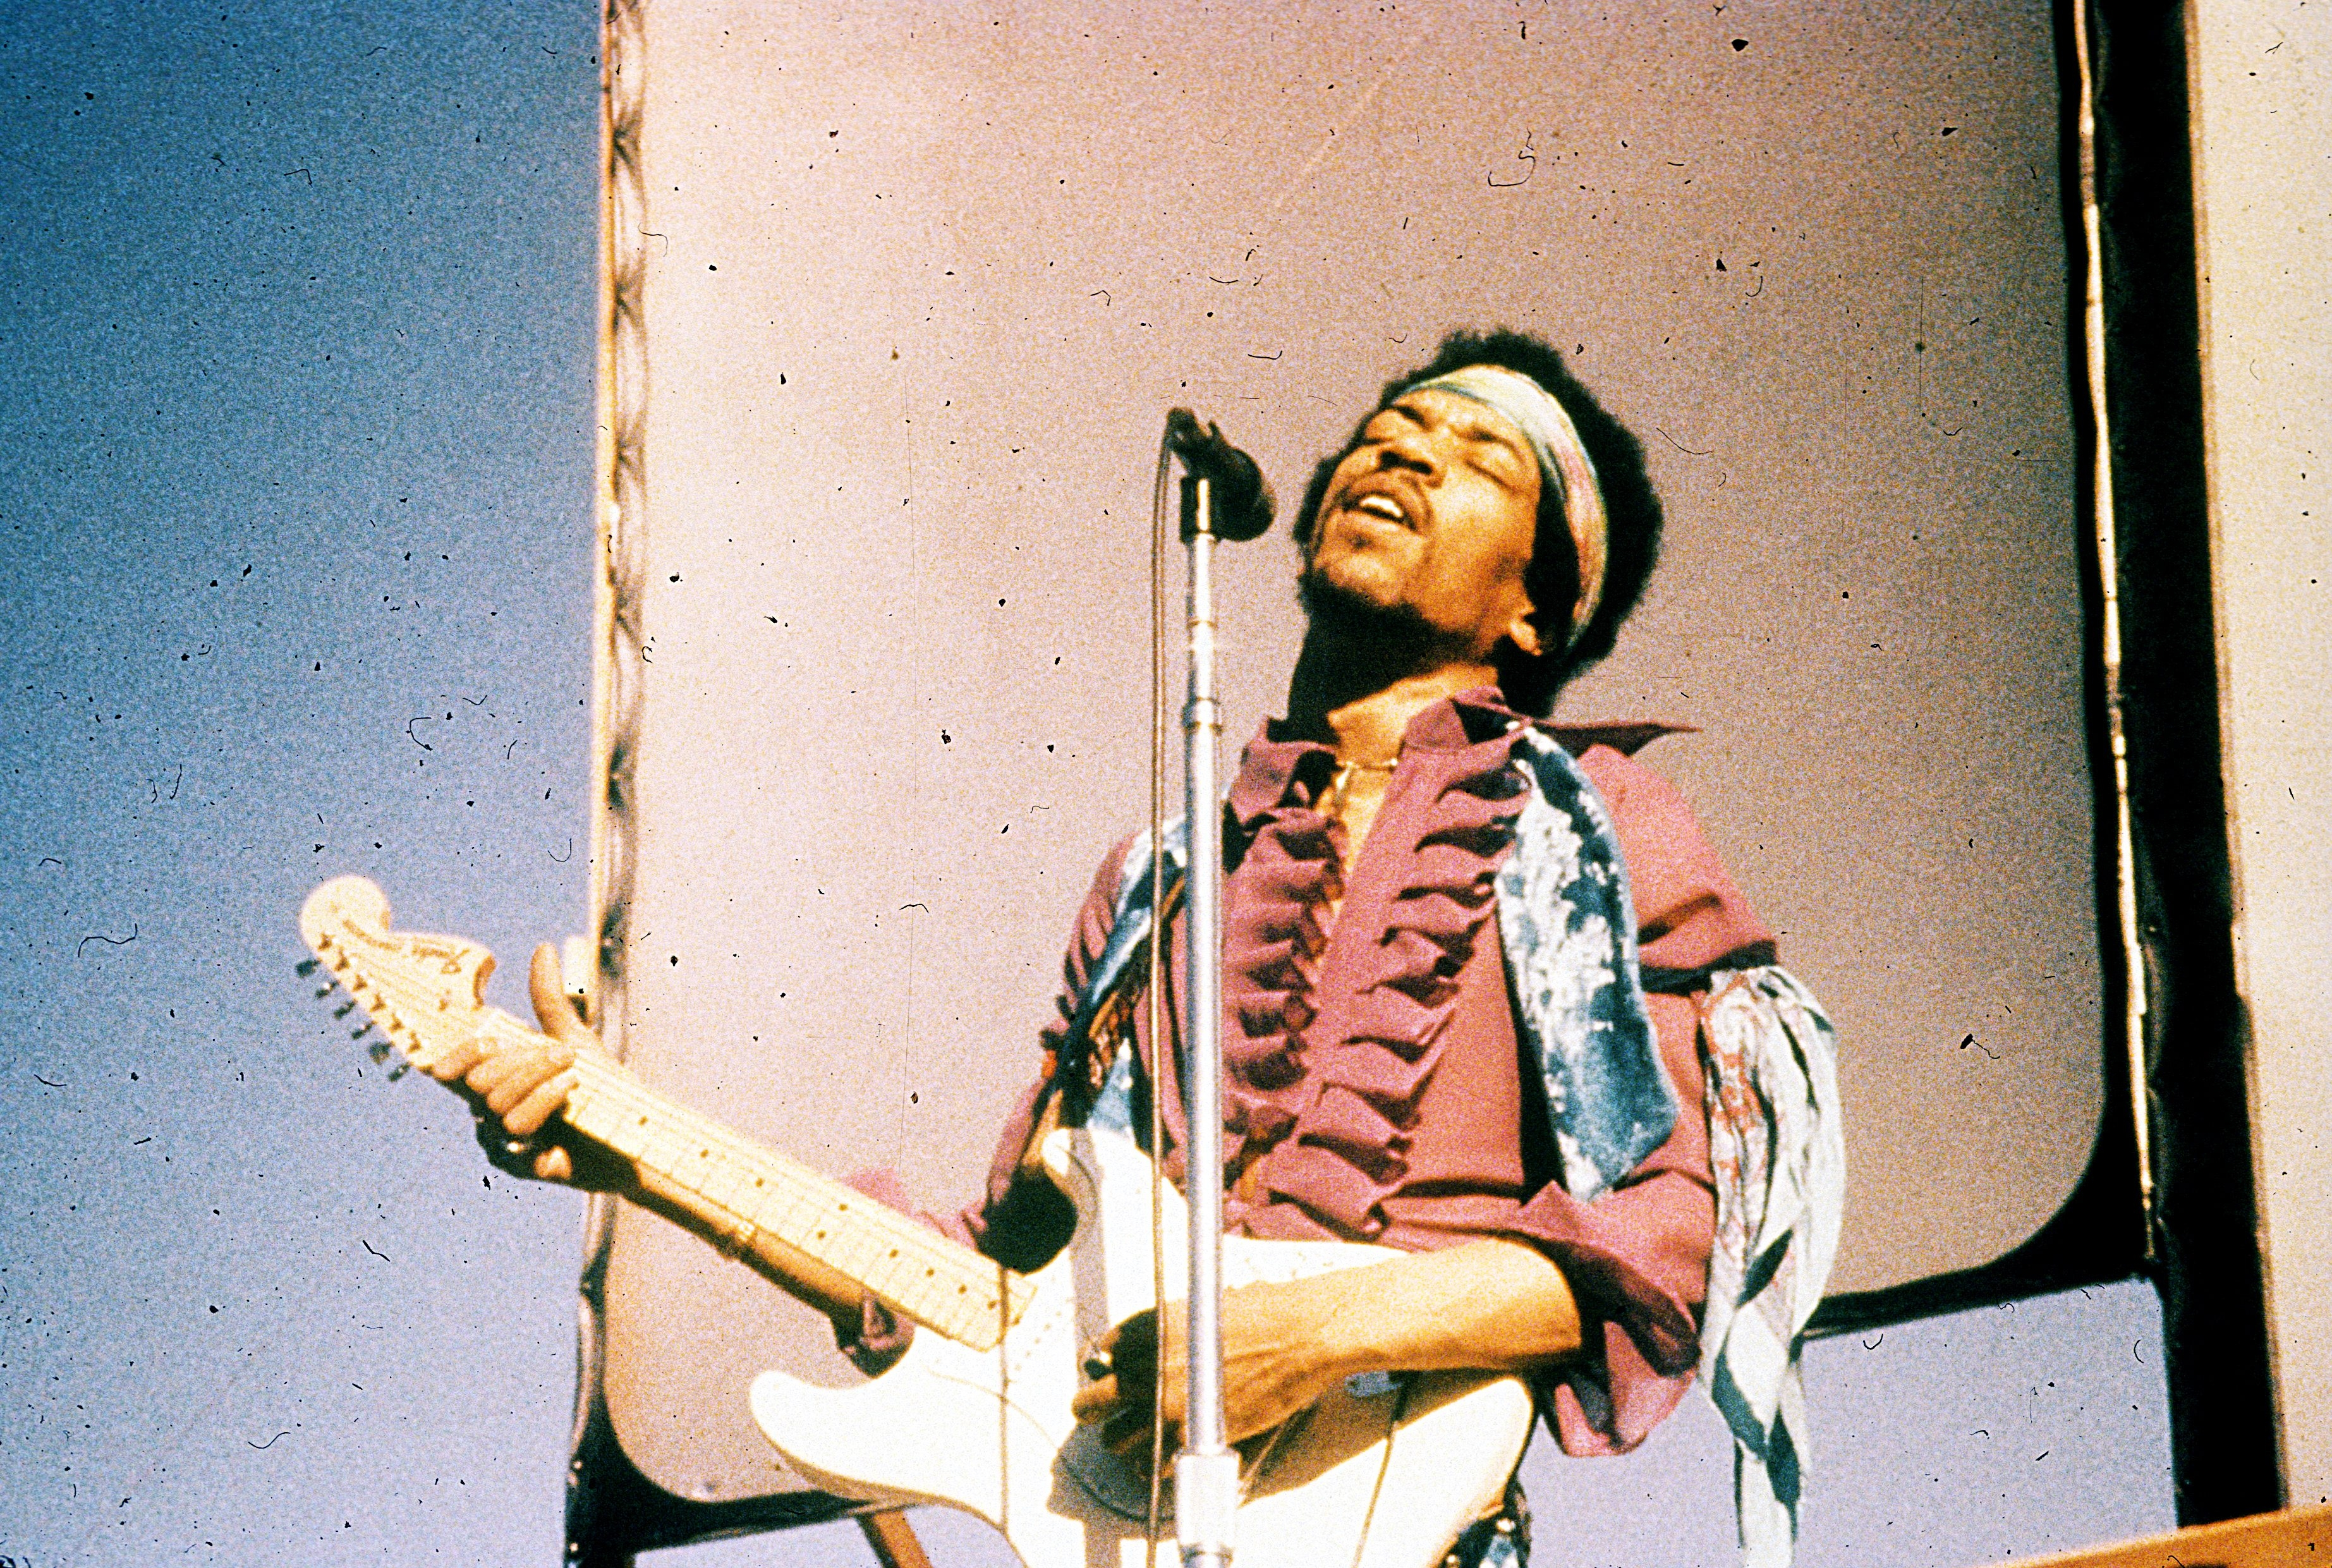 Jimi Hendrix died at 27, and no one has ever been able to reproduce his trademark howl.